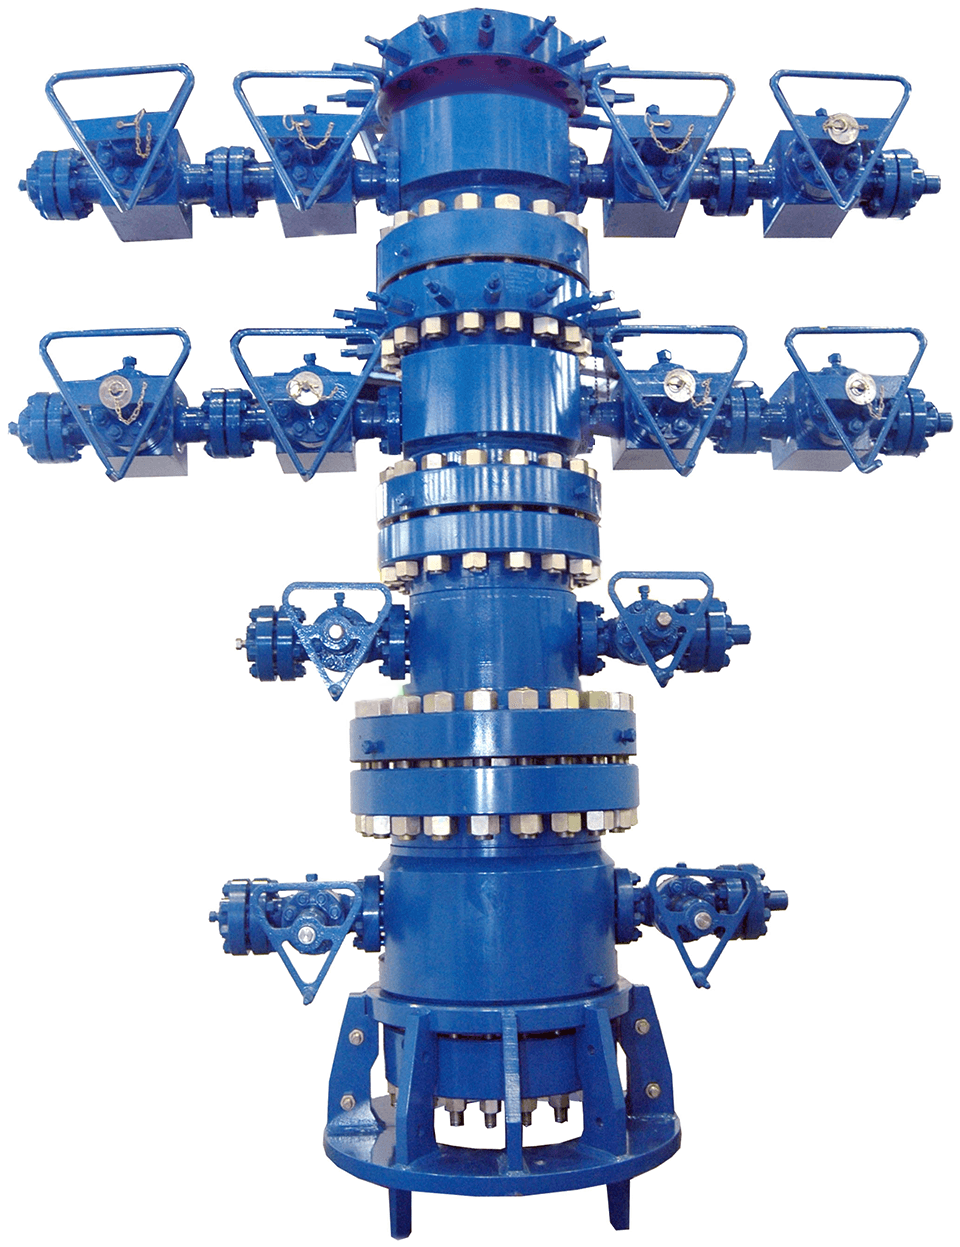 Wellhead technician jobs in clipart clipart images gallery.